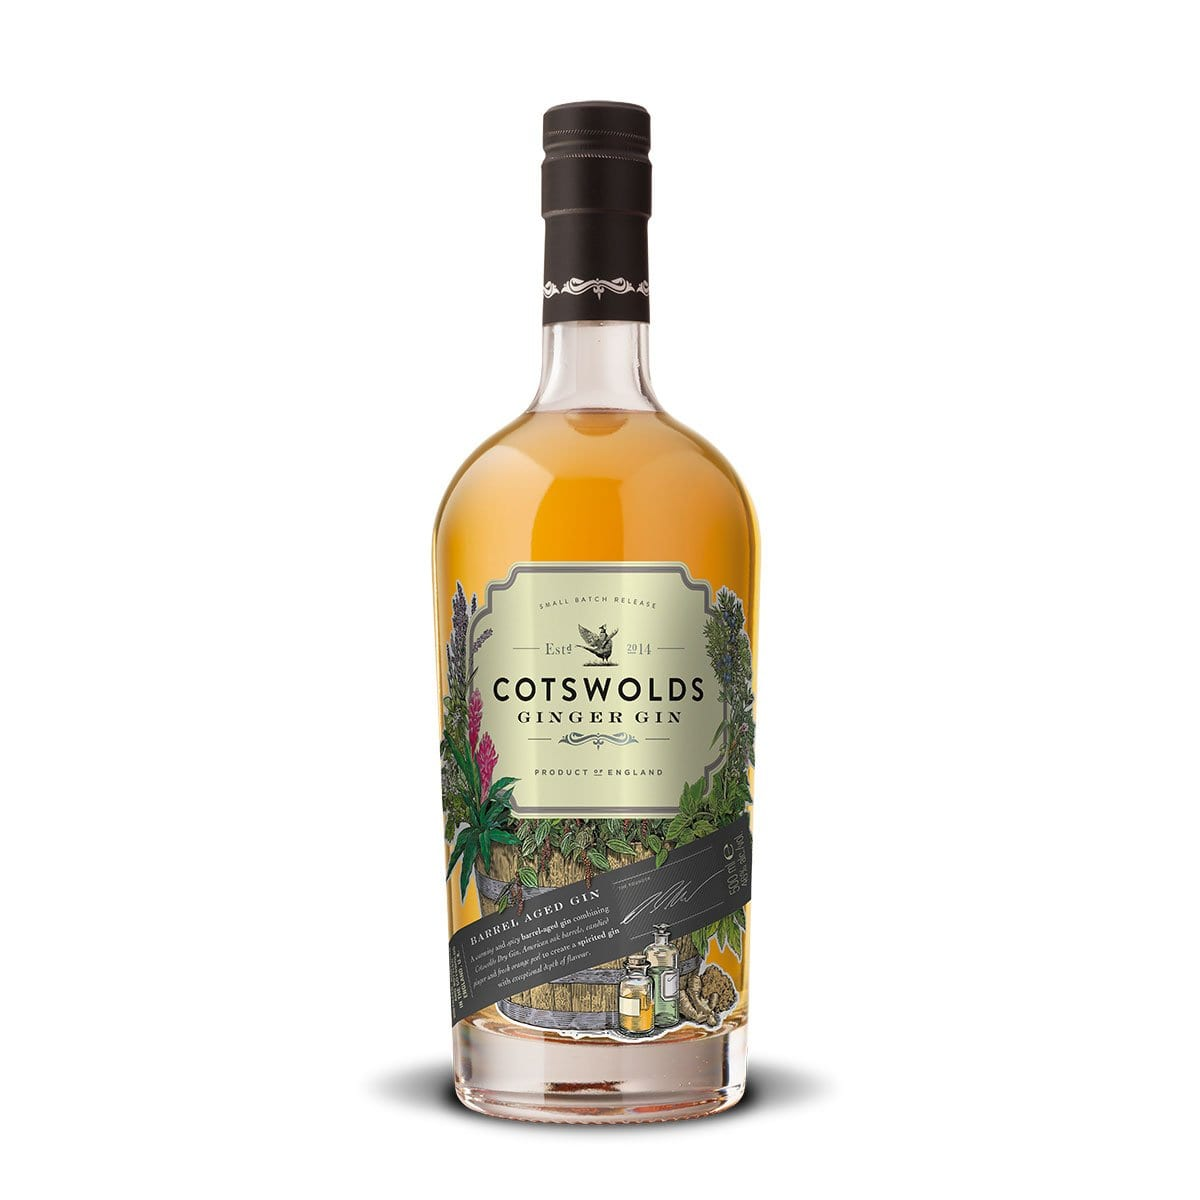 Cotswolds Ginger Gin from Cotswold Distillery